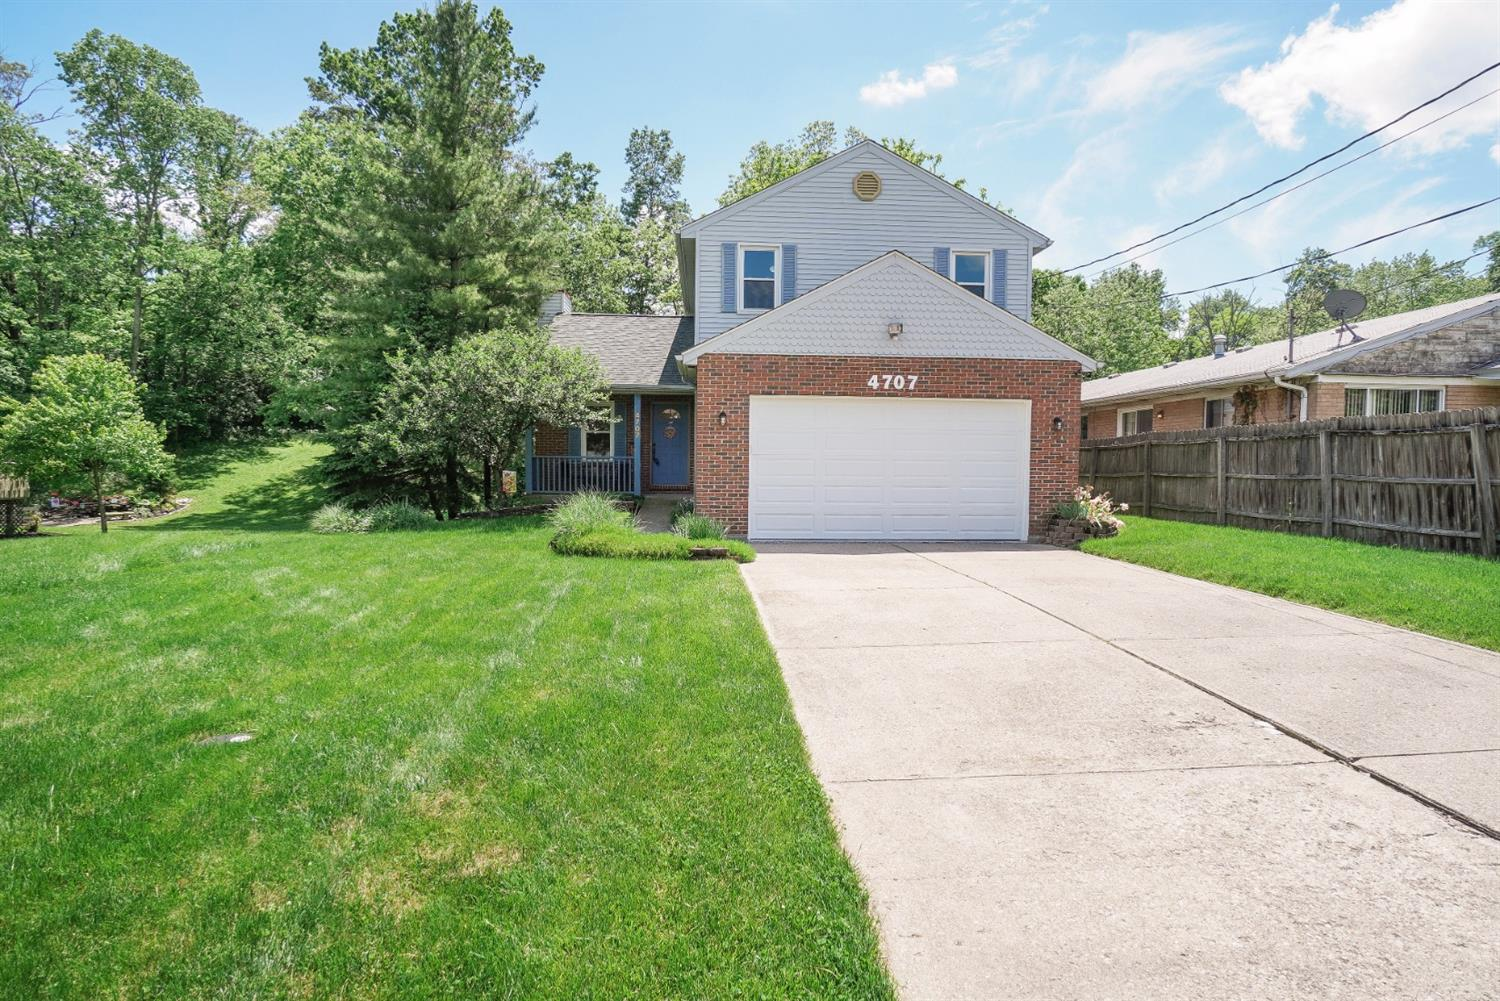 4707 Clevesdale Dr Covedale, OH